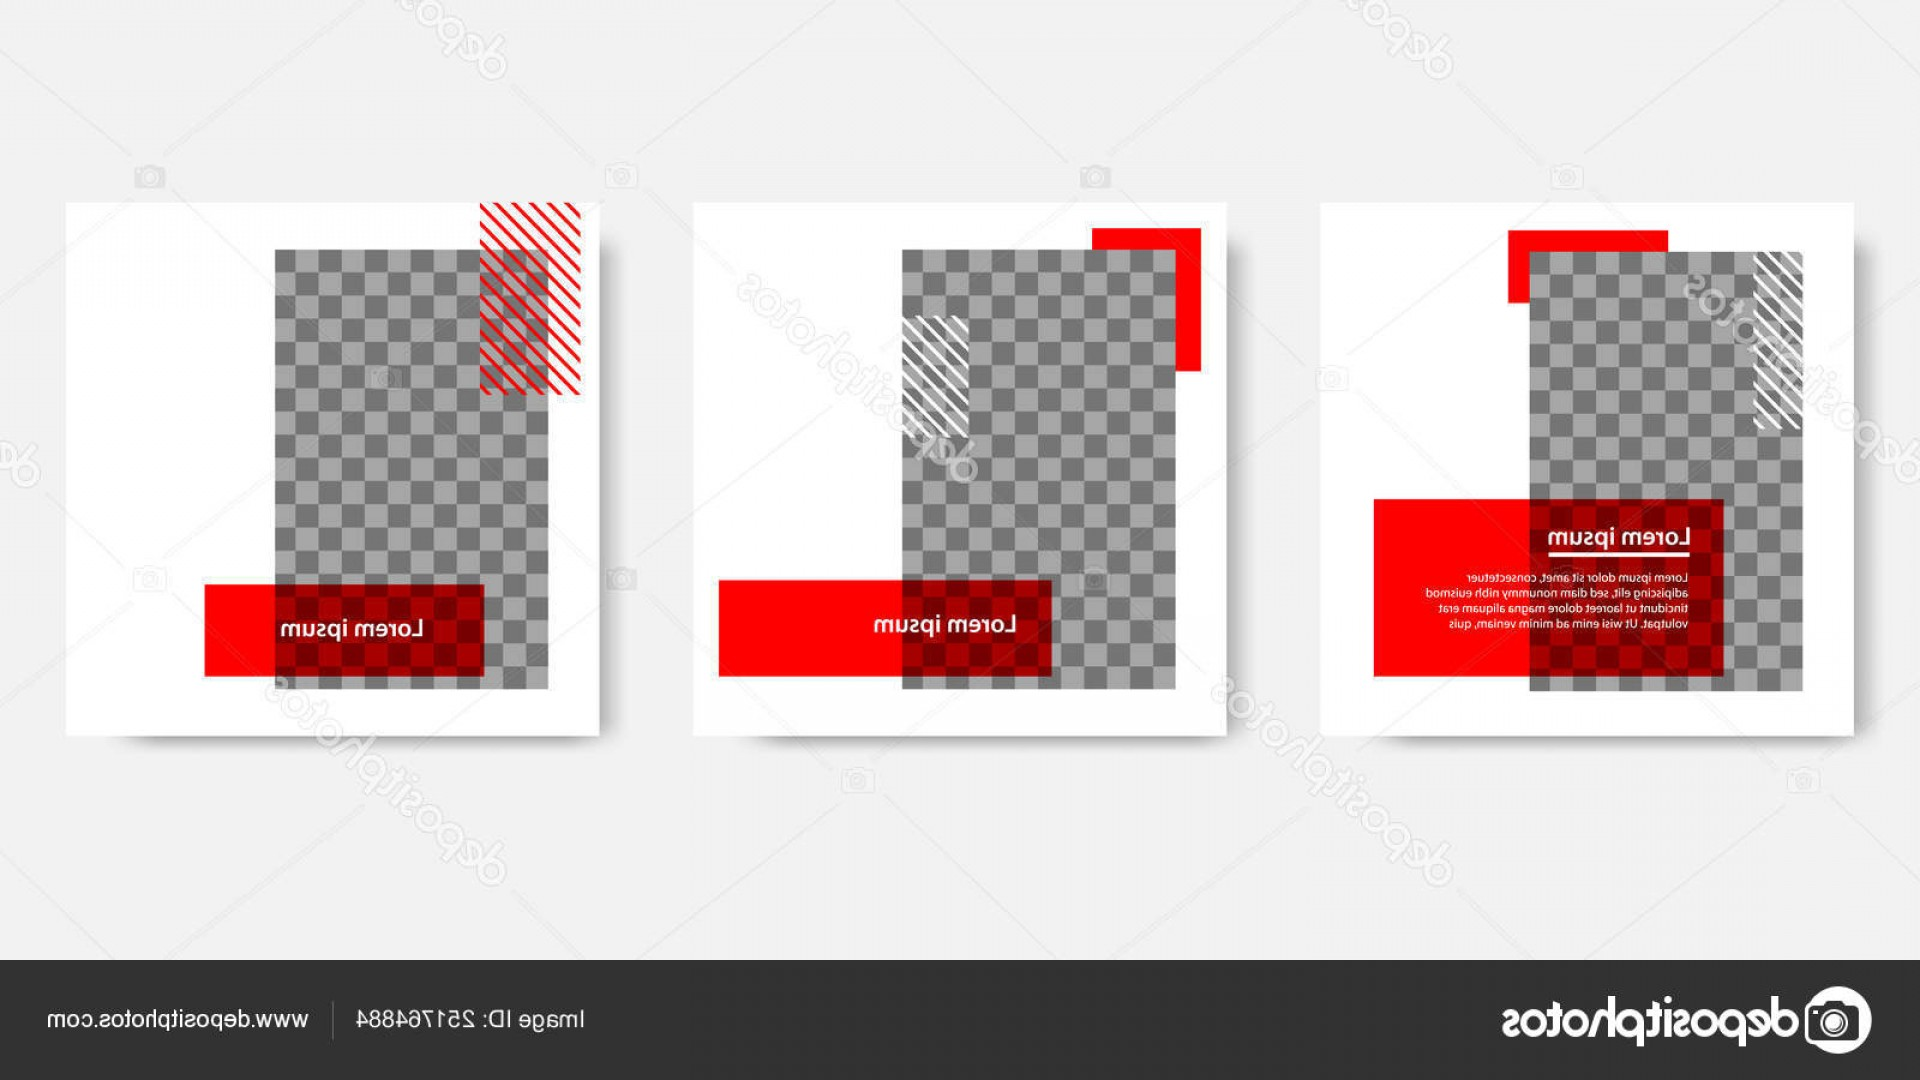 Black And White Flyer Vectors: Stock Illustration Minimal Design Background Vector Illustration